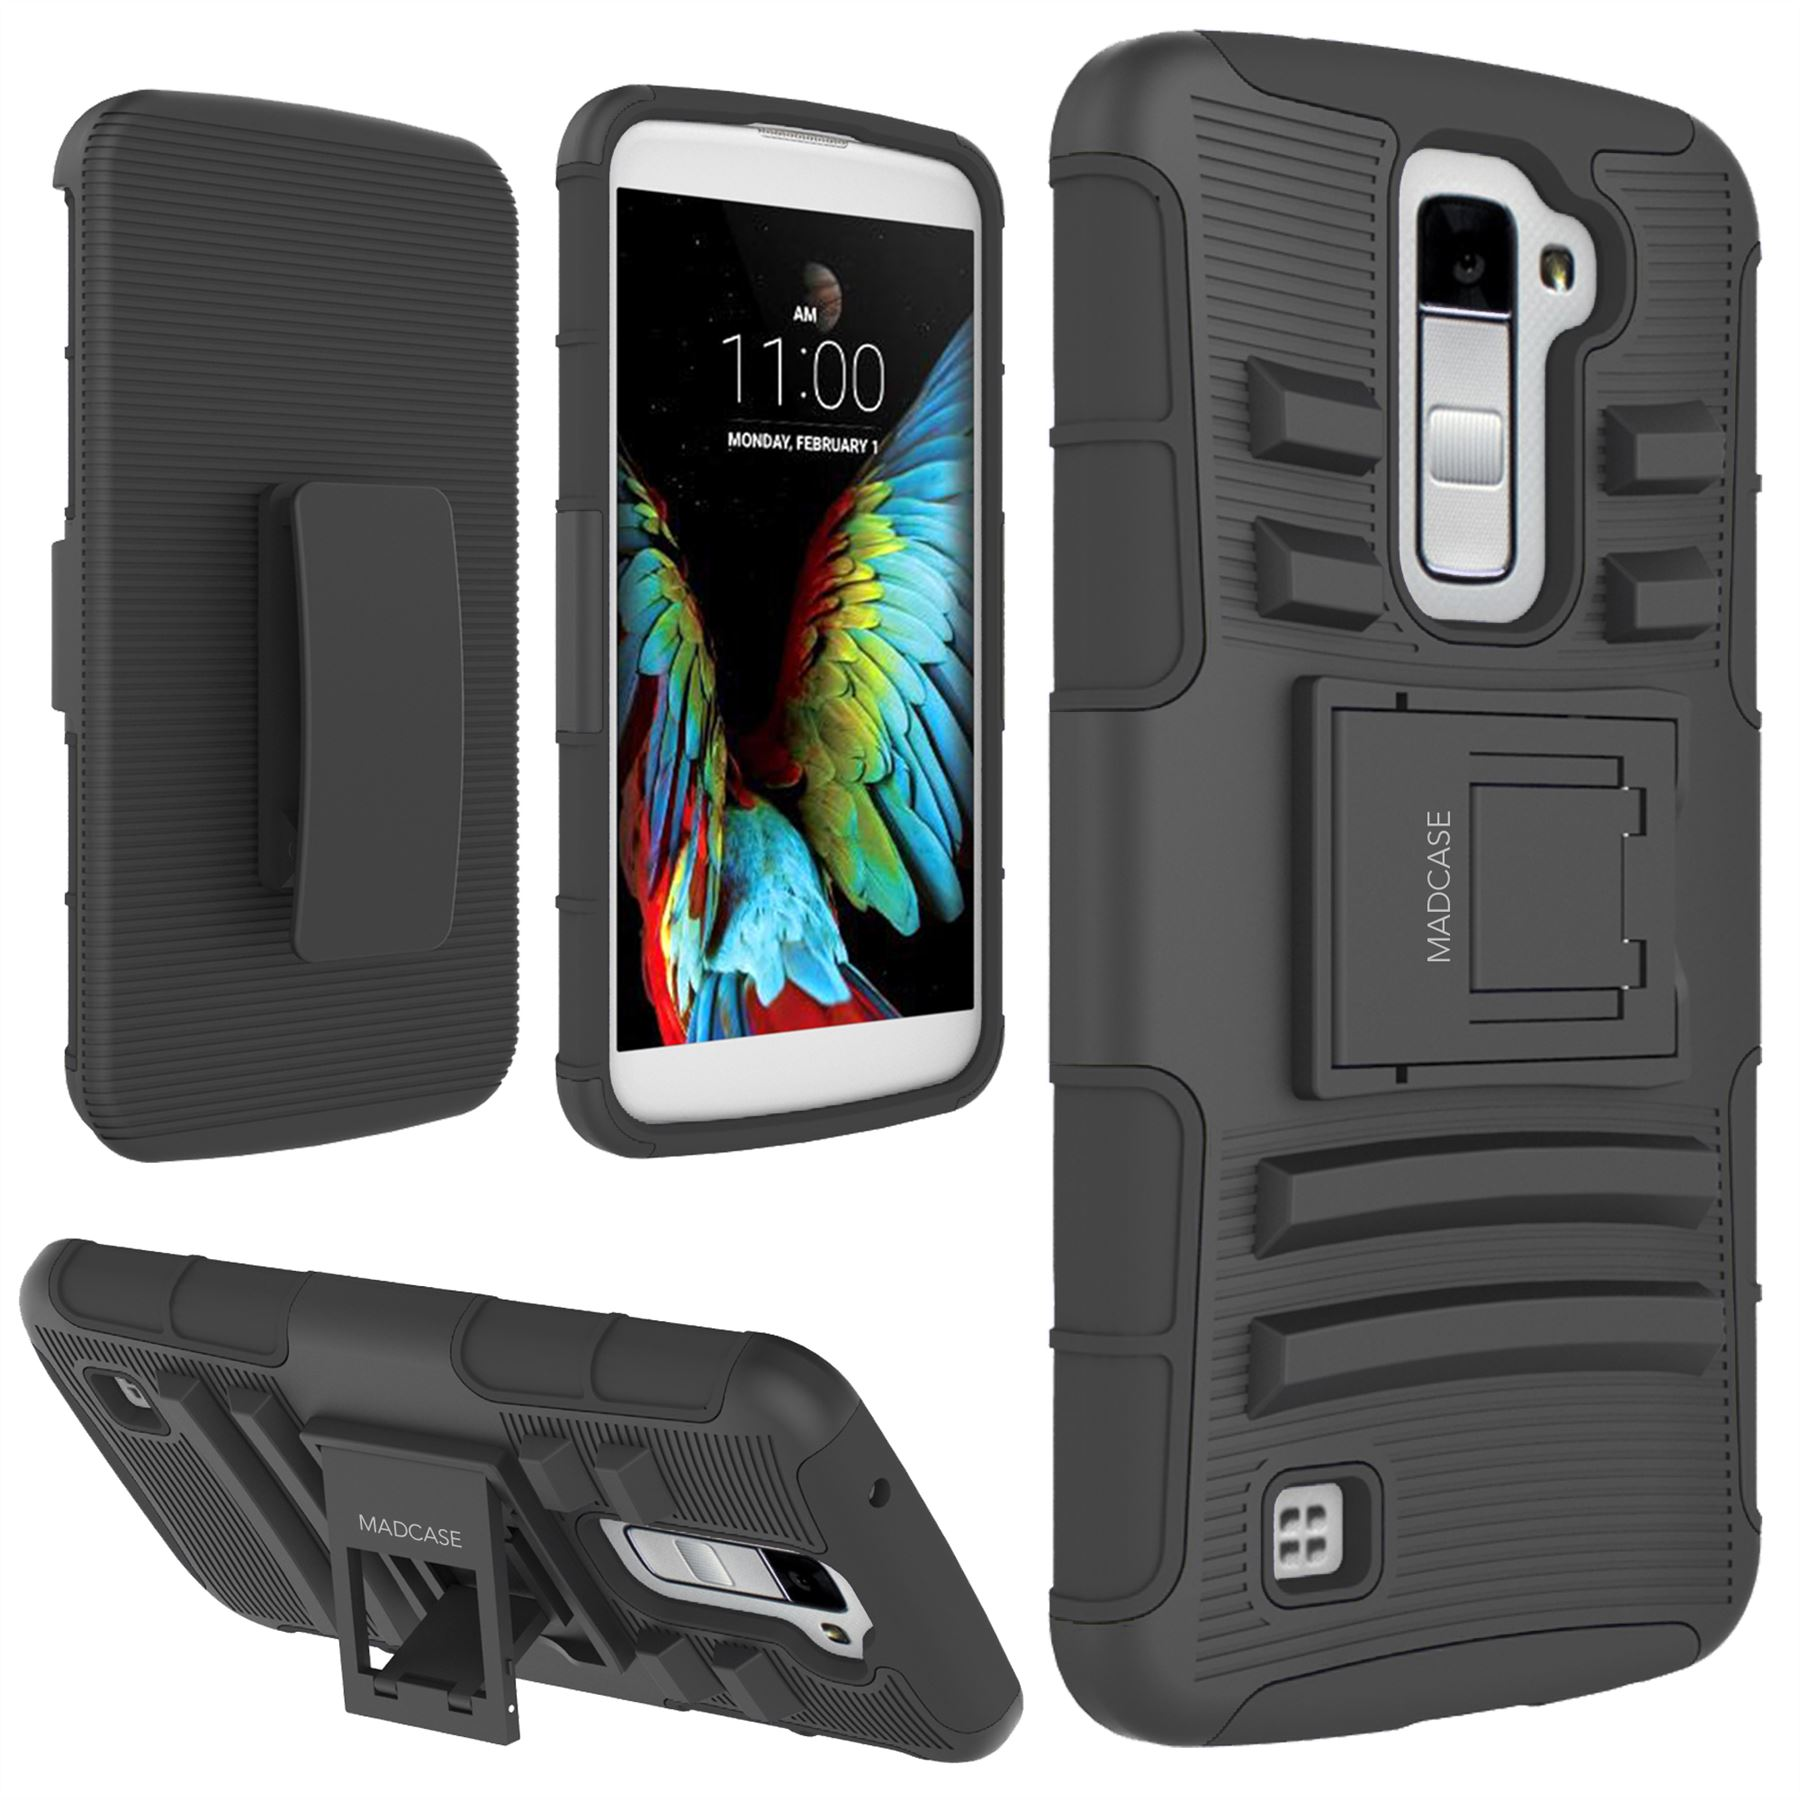 the latest 30ebc 4f476 Details about Madcase Rigid Armour Durable Shockproof Case with Kickstand  Cover for LG K10